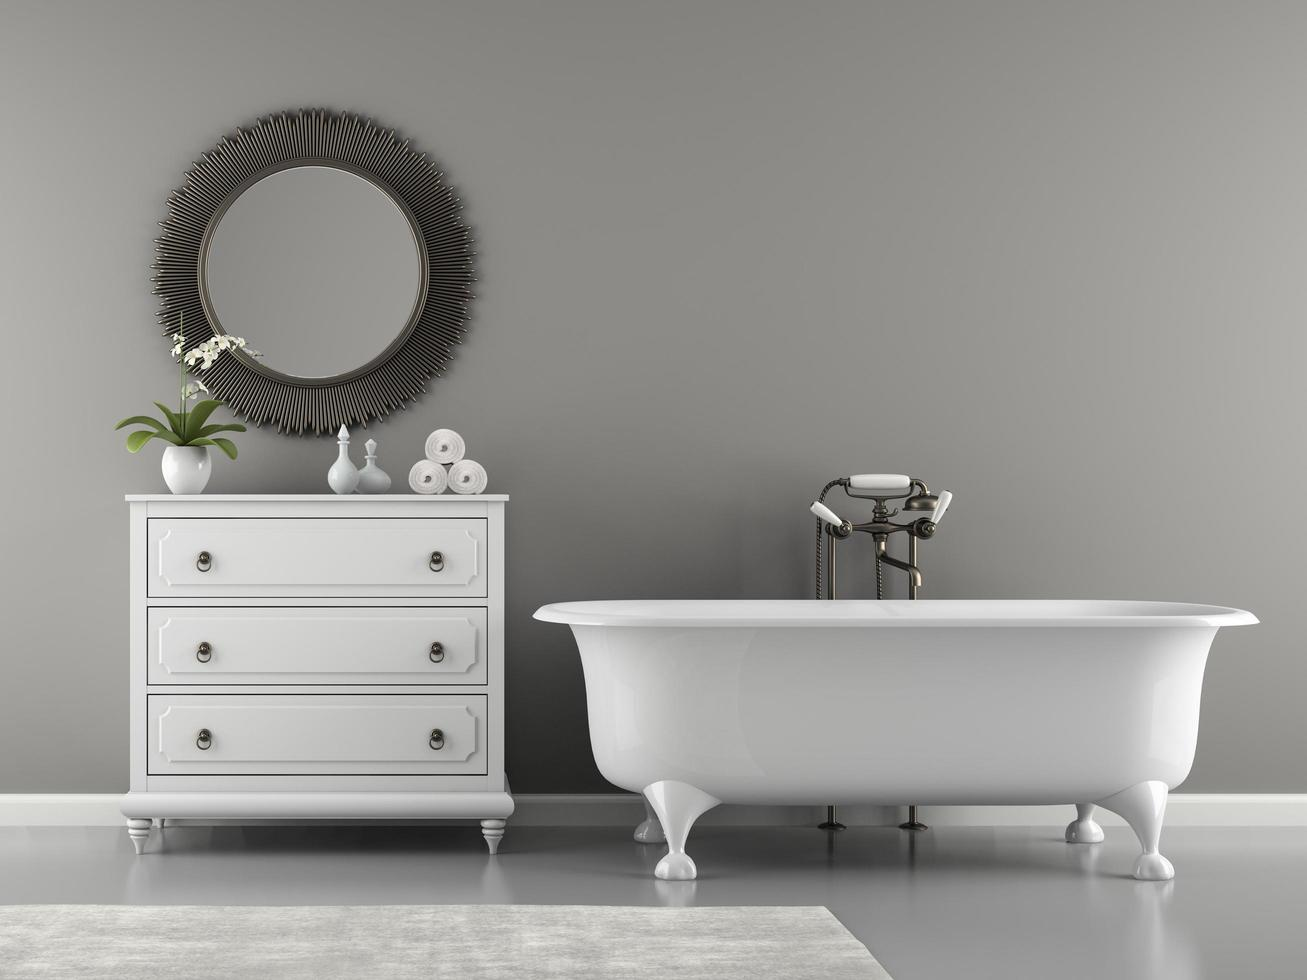 Interior of a classic bathroom with a stylish bathtub in 3D rendering photo